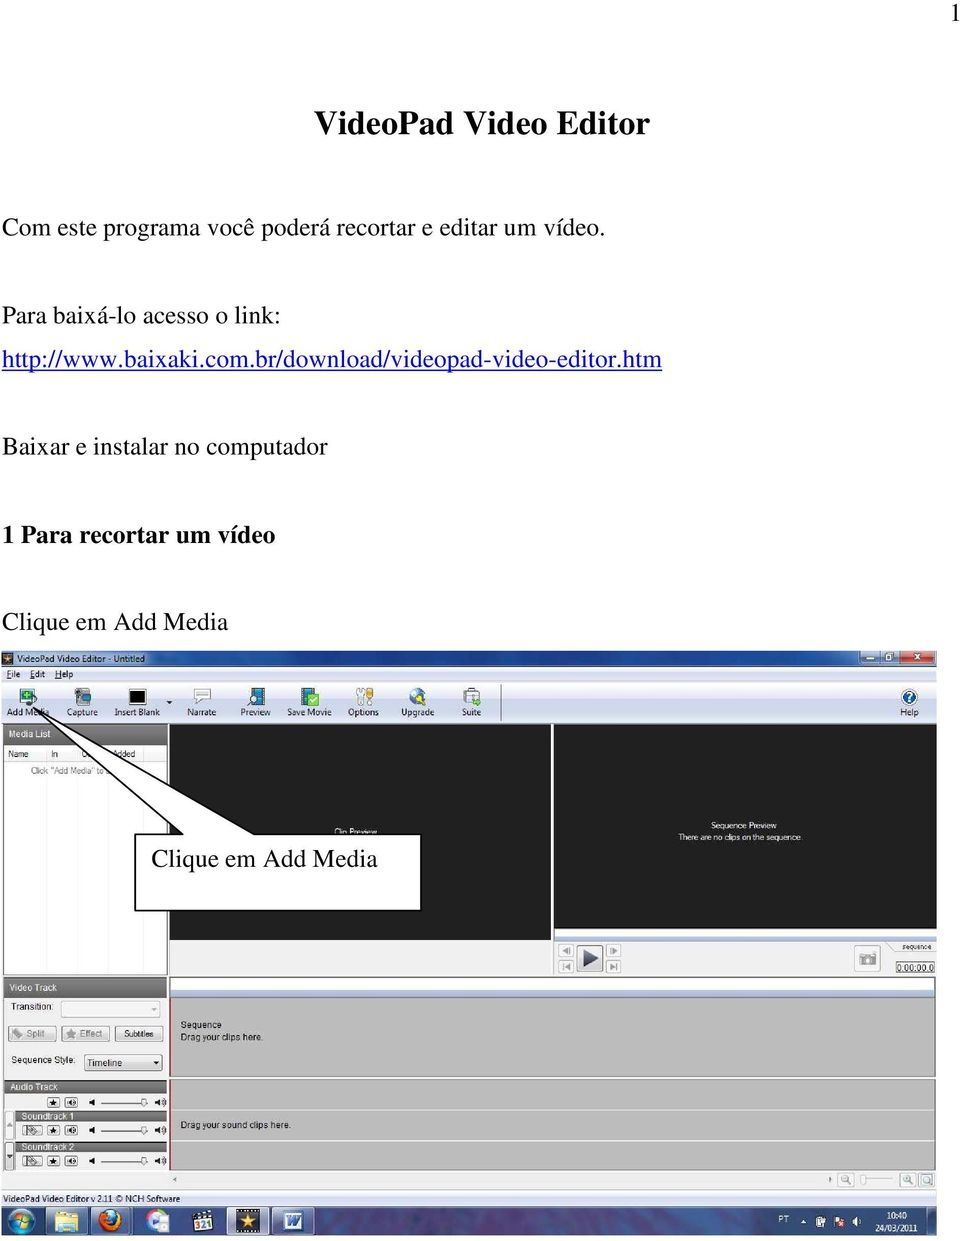 com.br/download/videopad-video-editor.